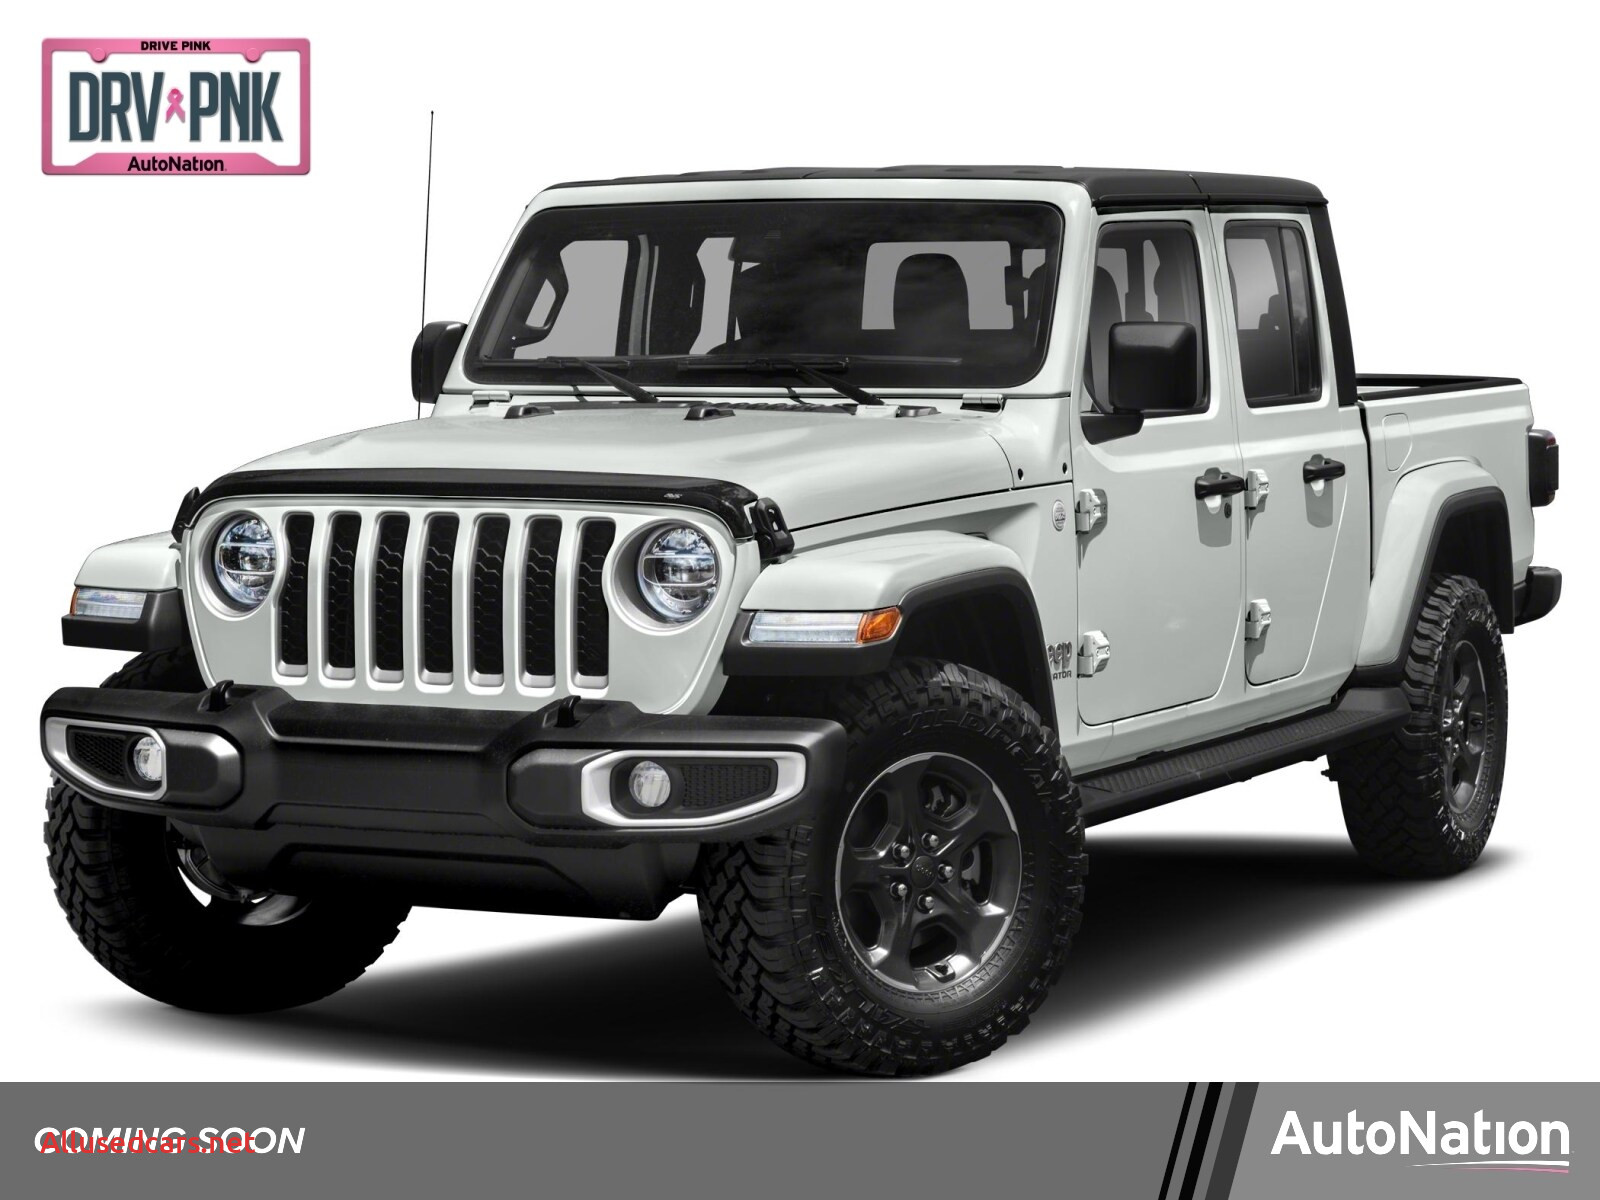 Cars for Sale Under 10000 In Phoenix Az Awesome 1c6jjtbg0ll 2020 Jeep Gladiator for Sale In Phoenix